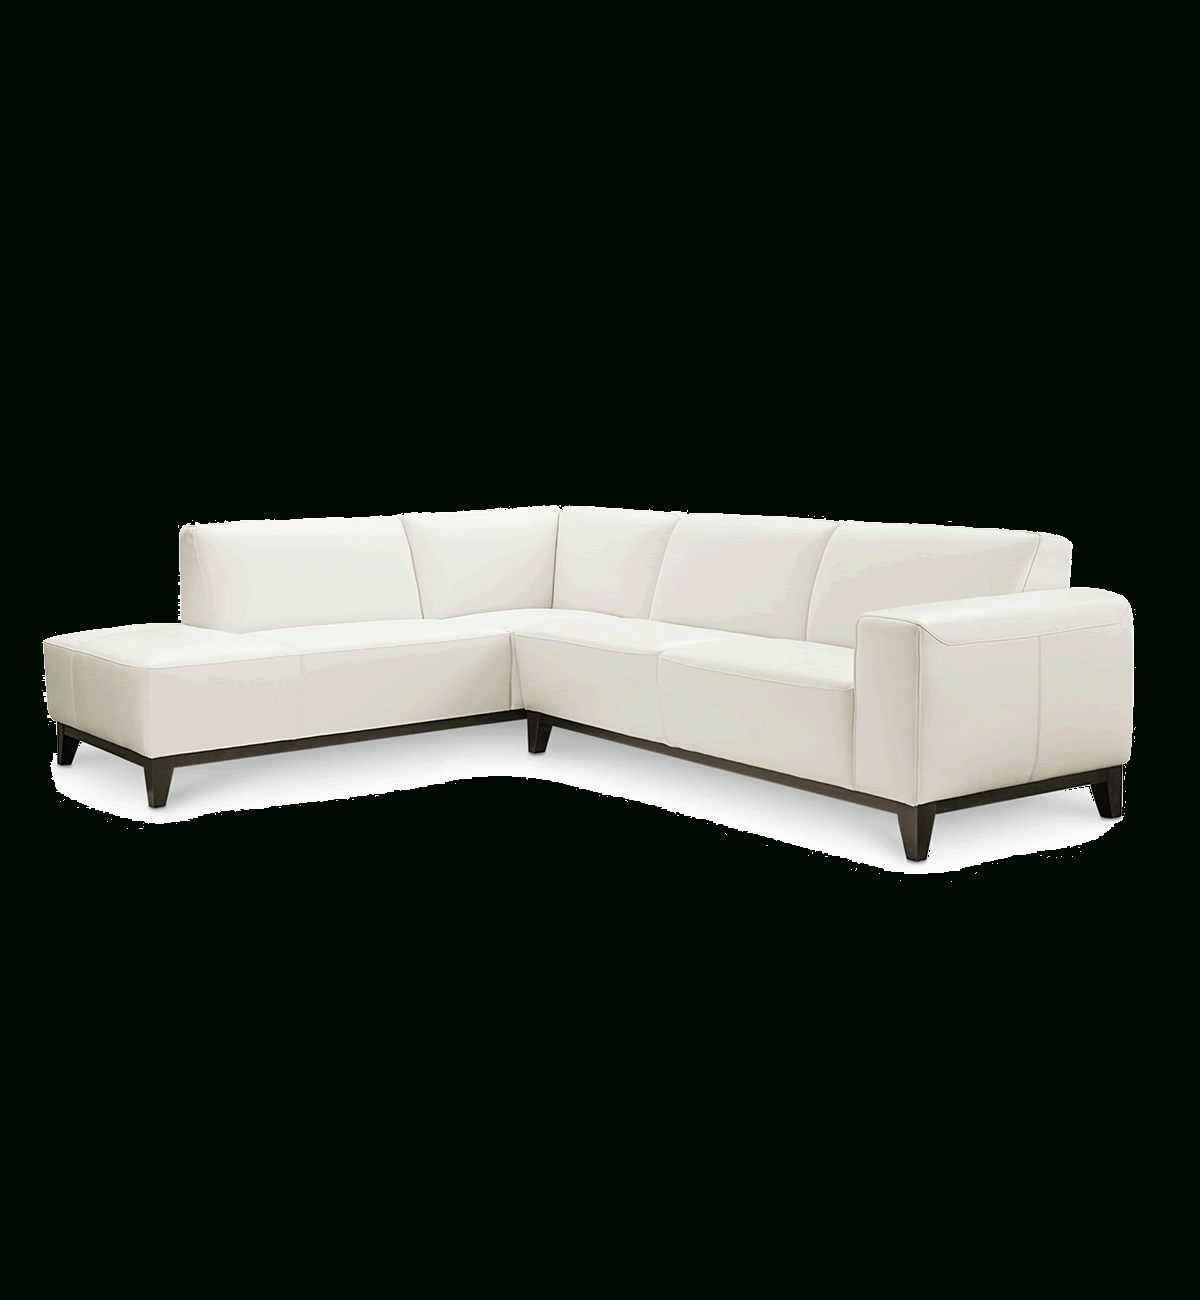 Leather Couches And Sofas - Macy's regarding Macys Leather Sofas (Image 4 of 10)